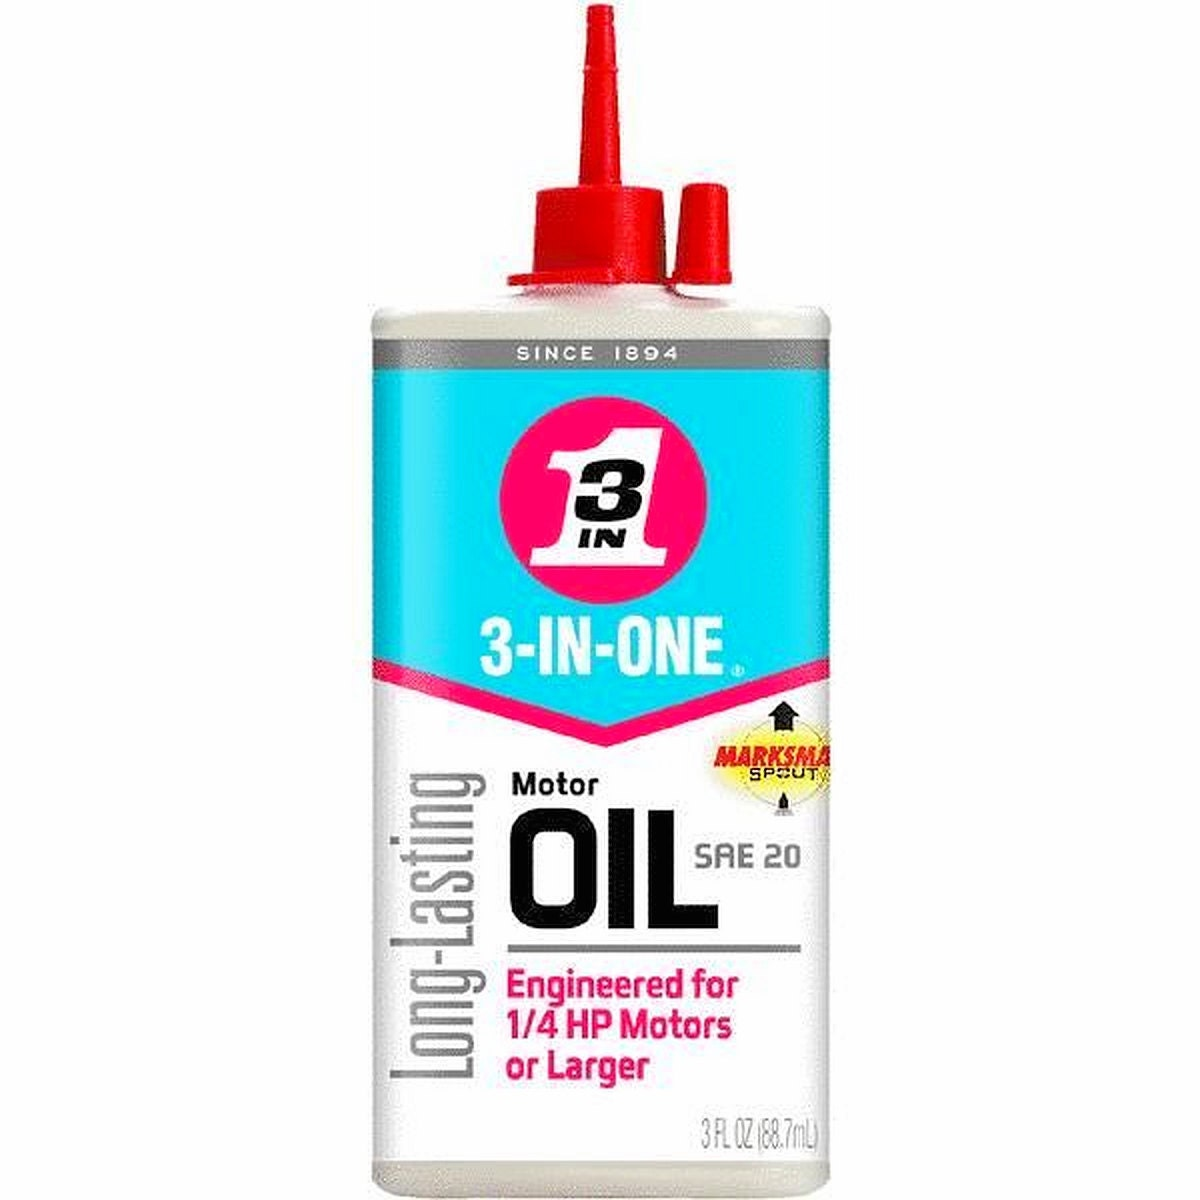 3 in one sae 20 electric motor oil long lasting lubricant for for How to lubricate an electric motor